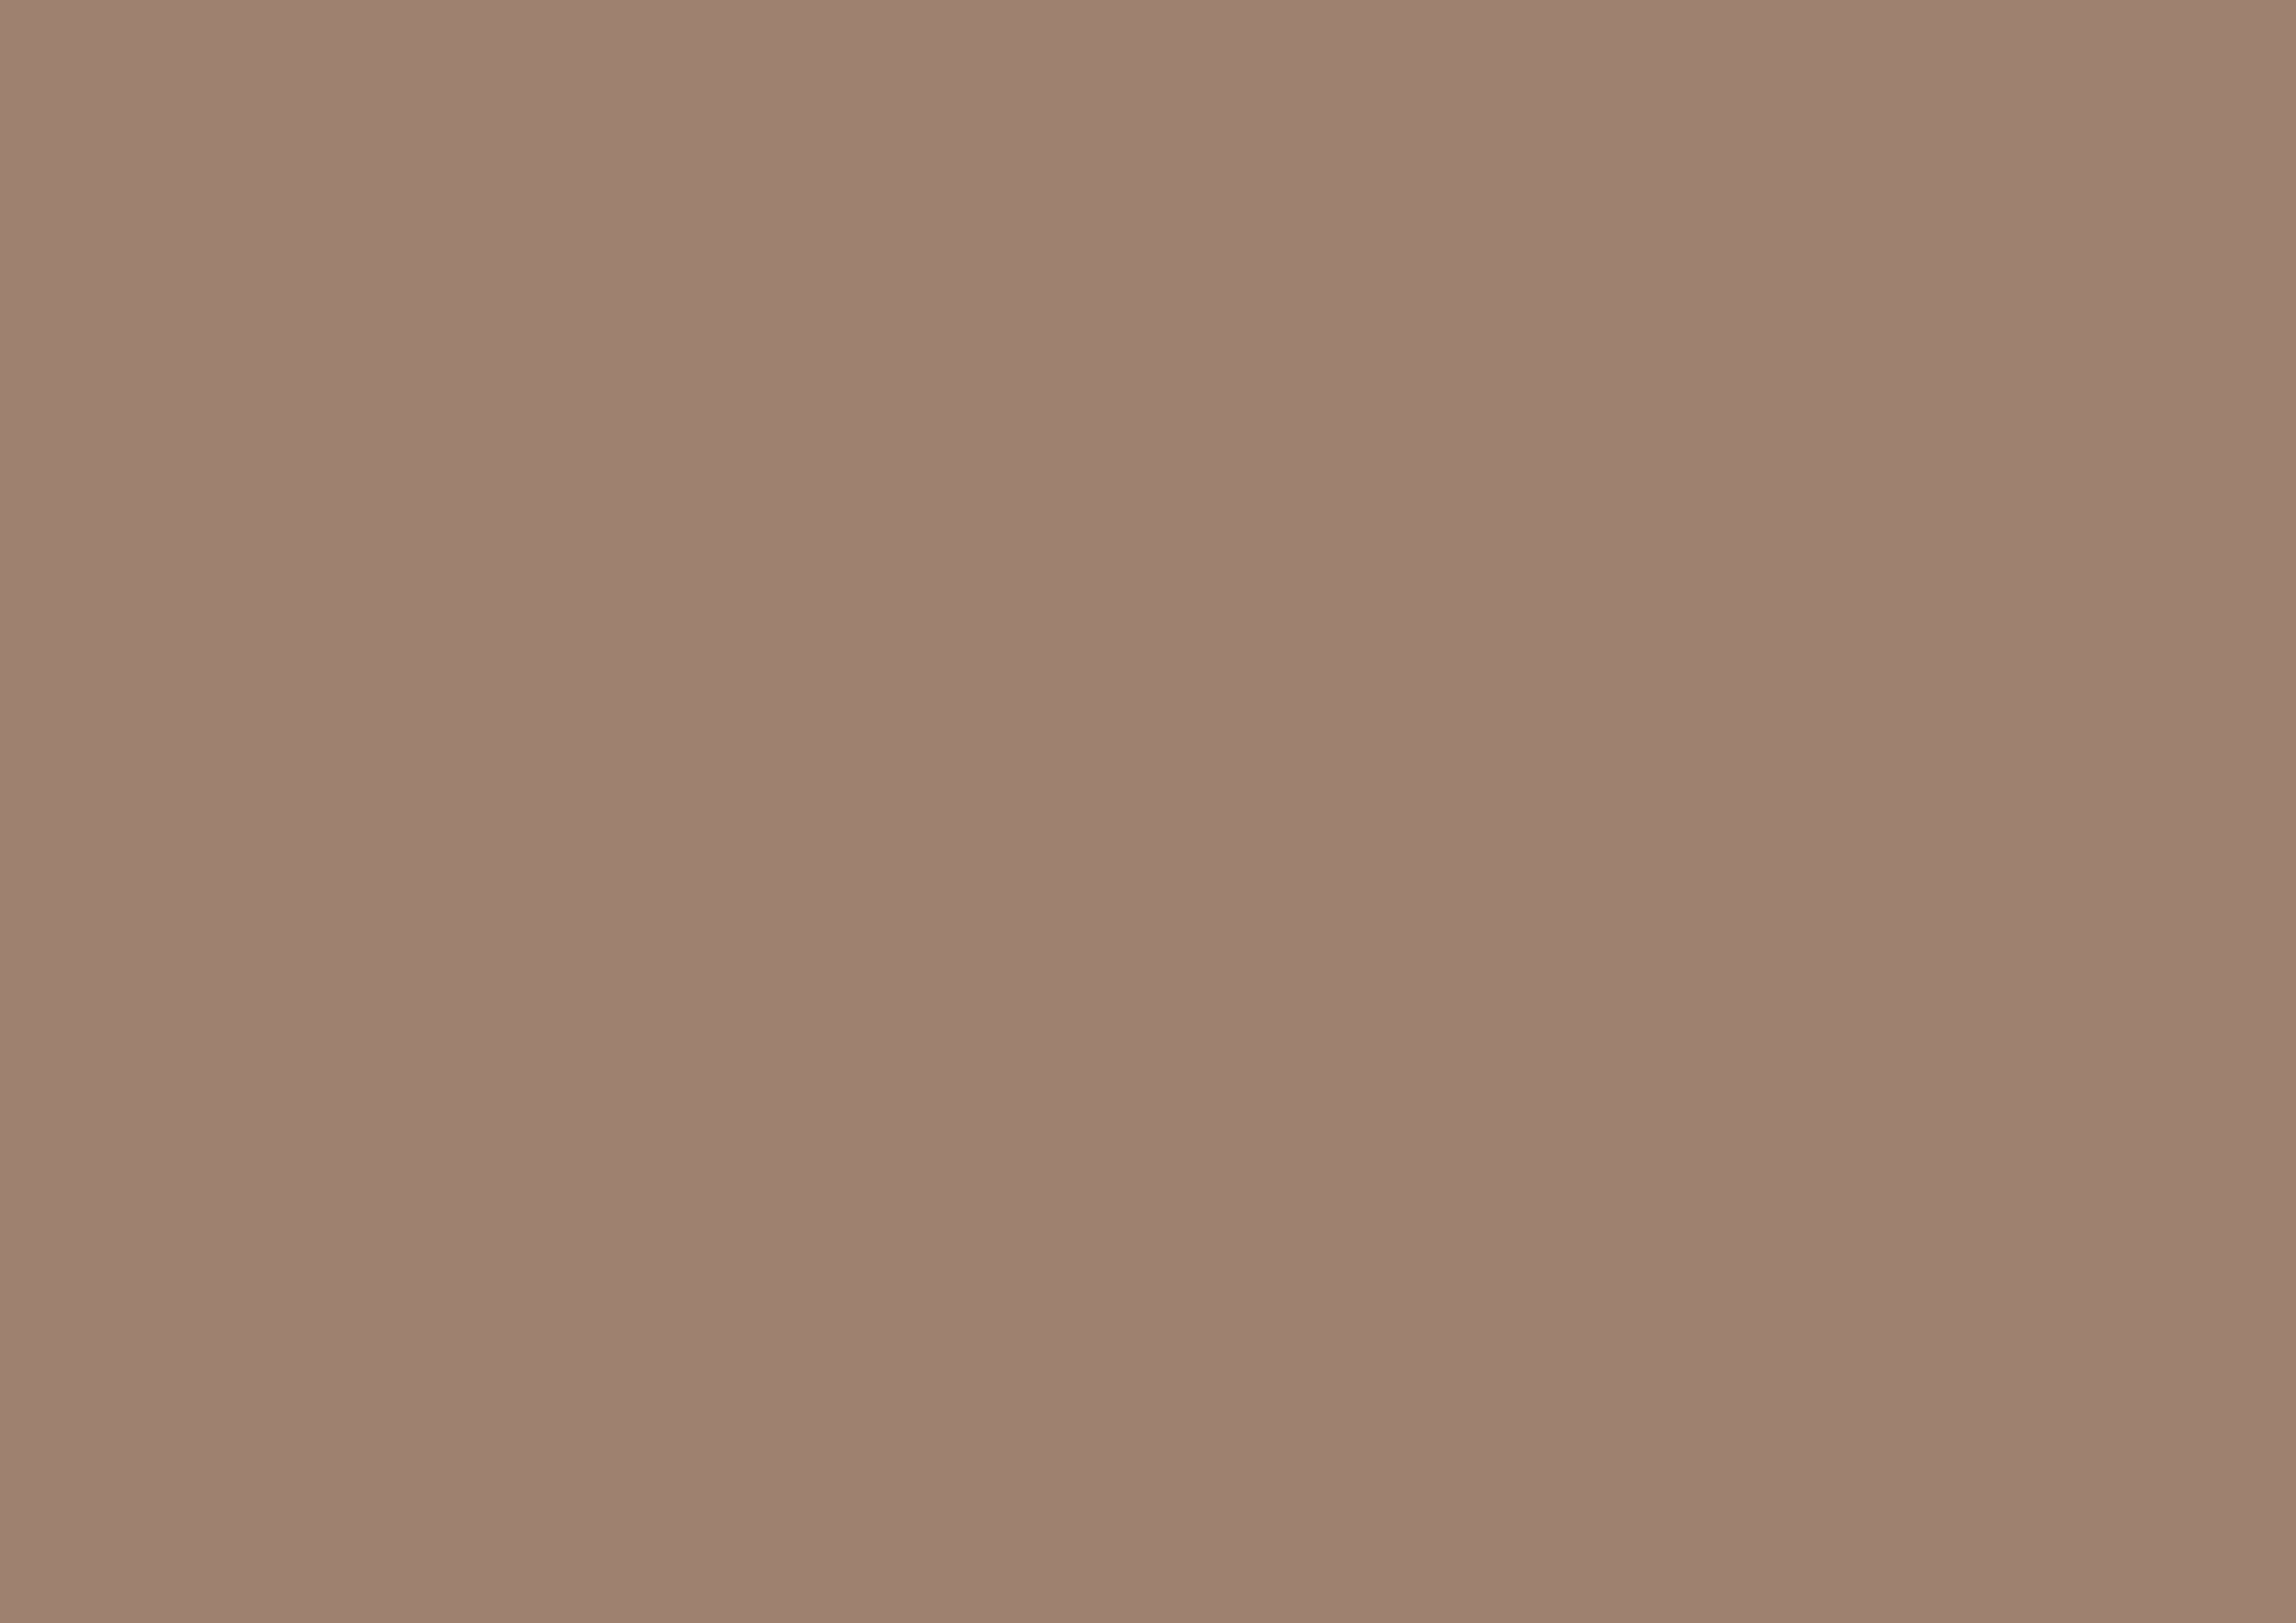 3508x2480 Beaver Solid Color Background